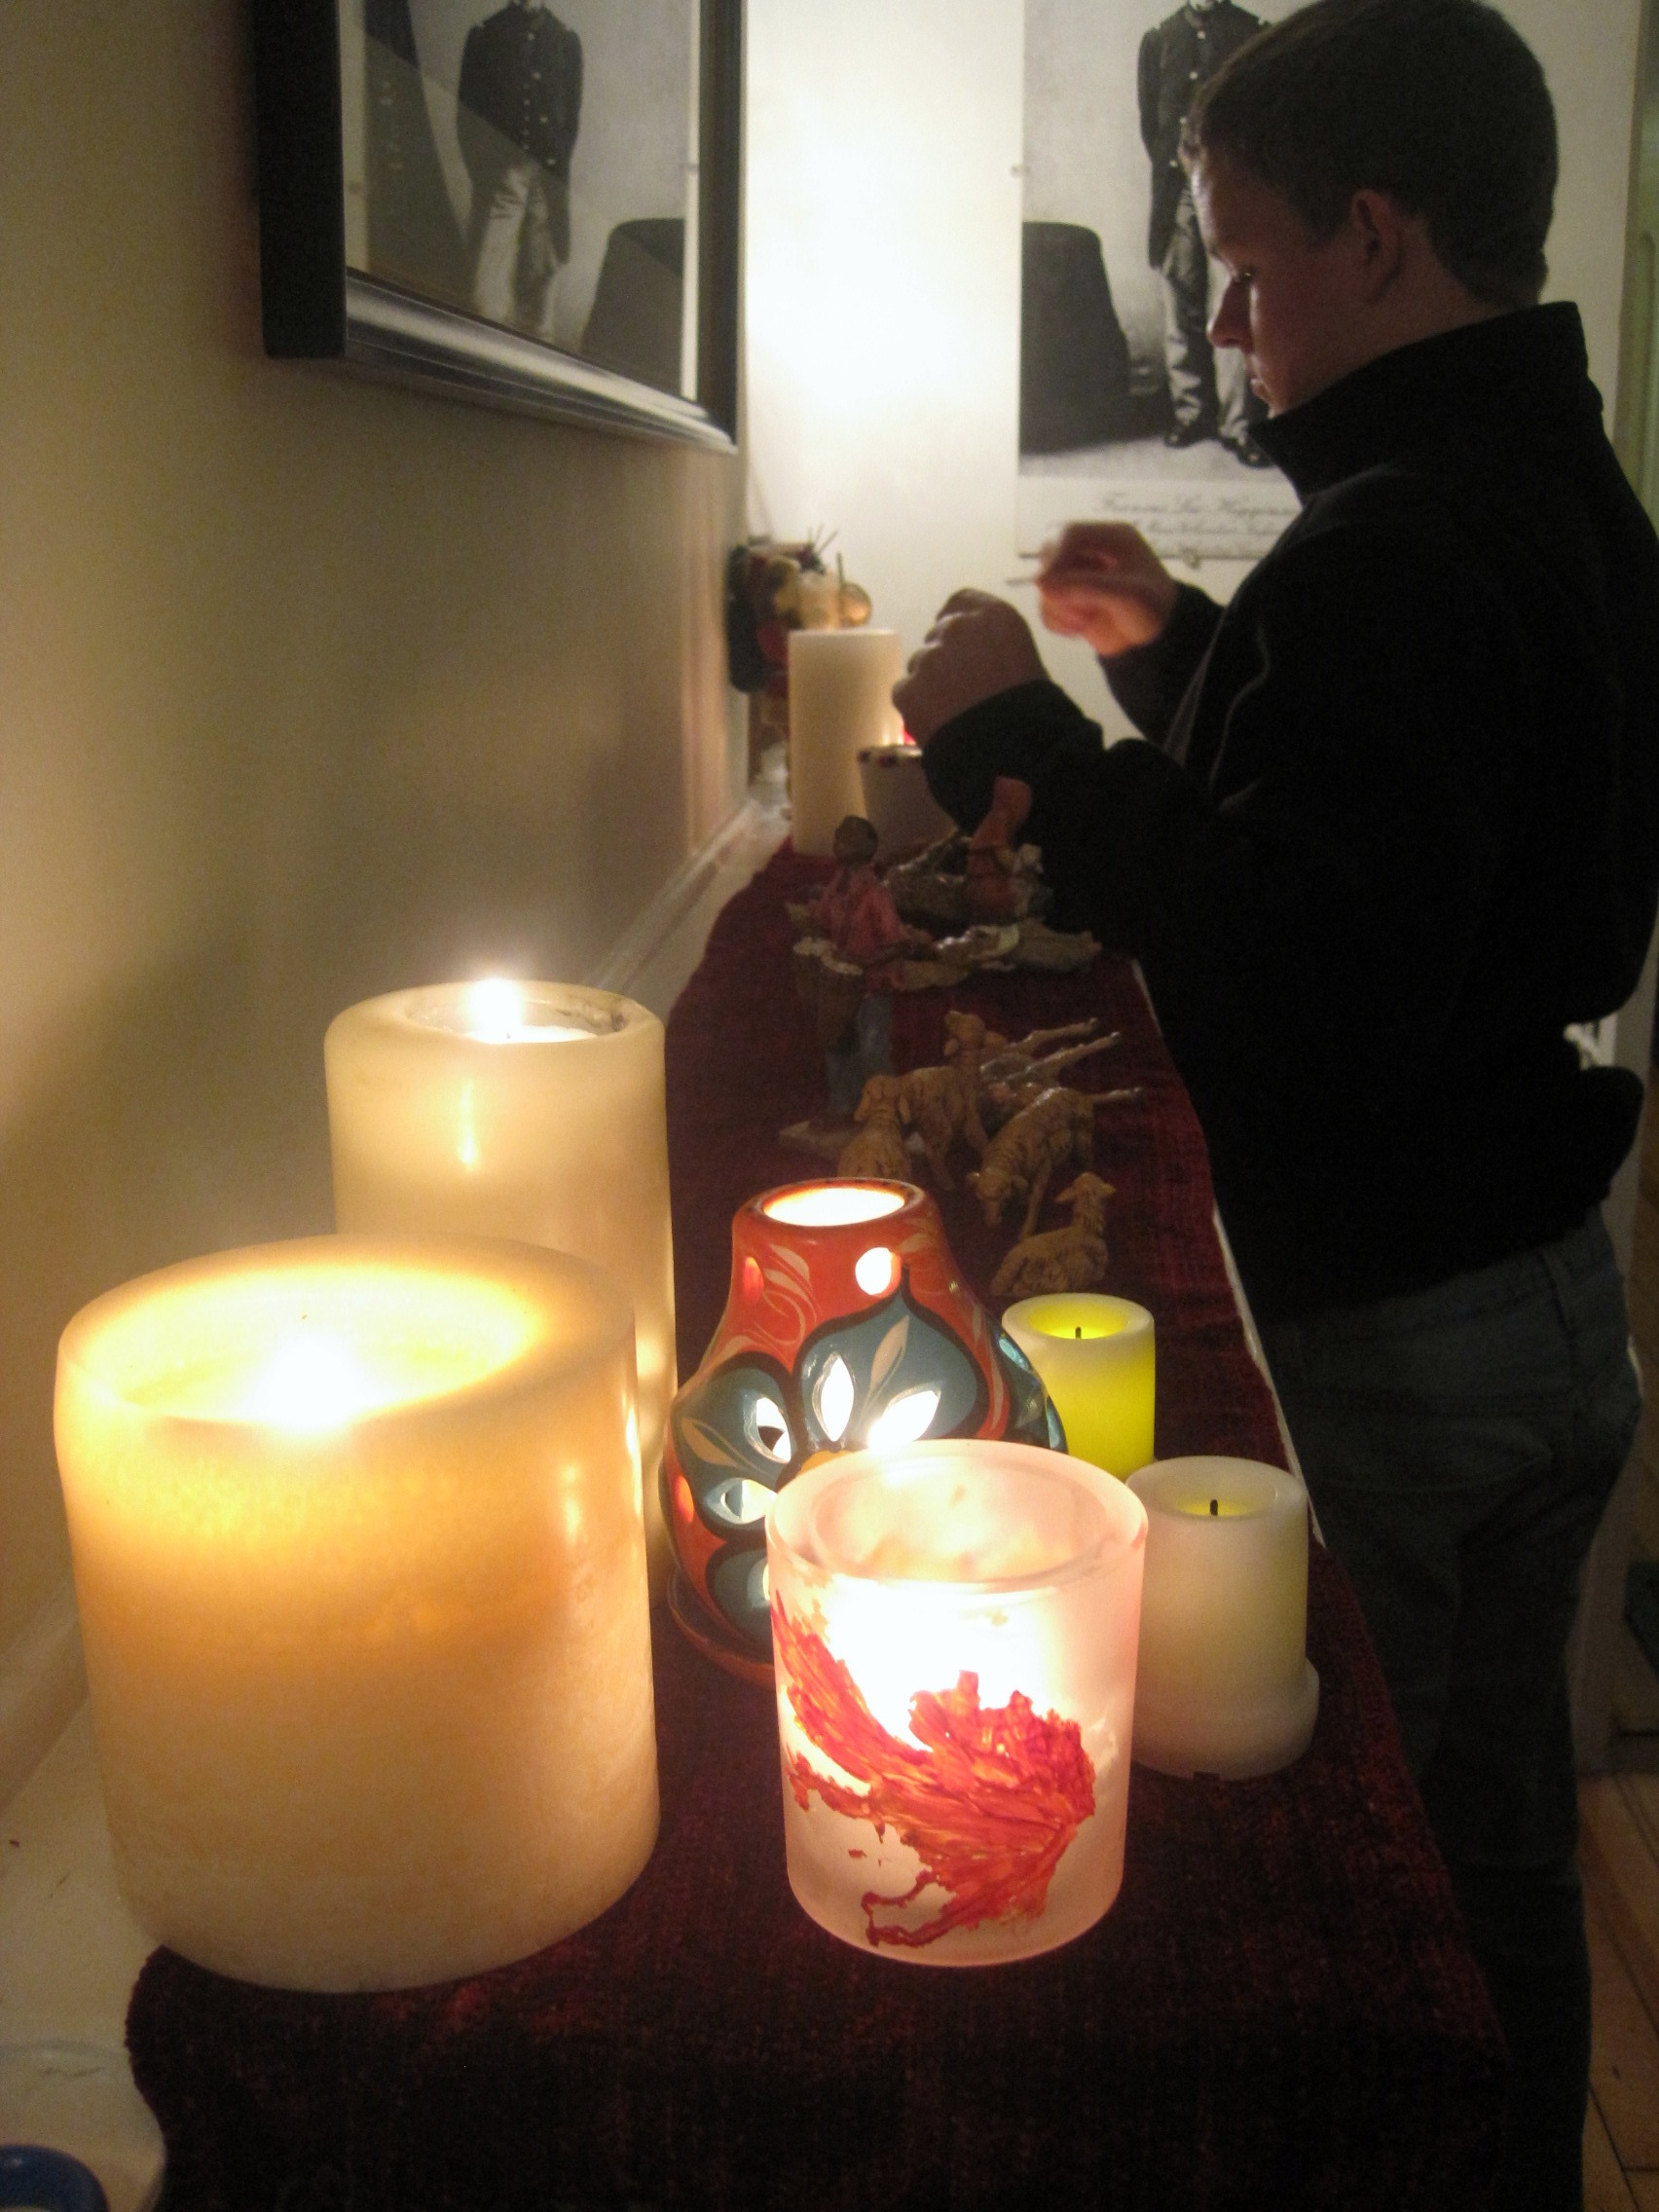 Preparing mantel for Christmas nativity scene